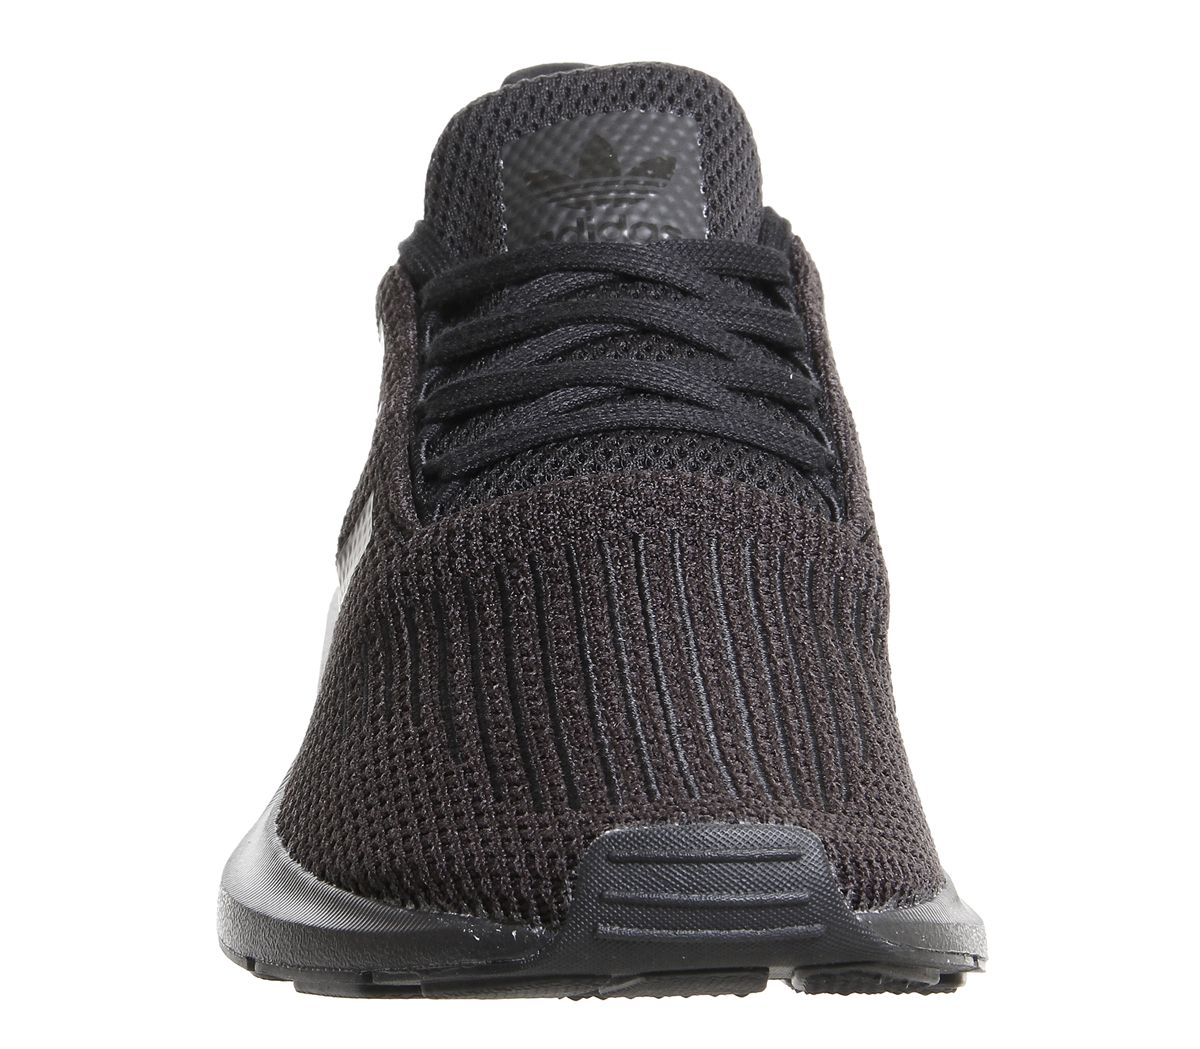 Mens-Adidas-Swift-Run-Trainers-Black-Trainers-Shoes thumbnail 6